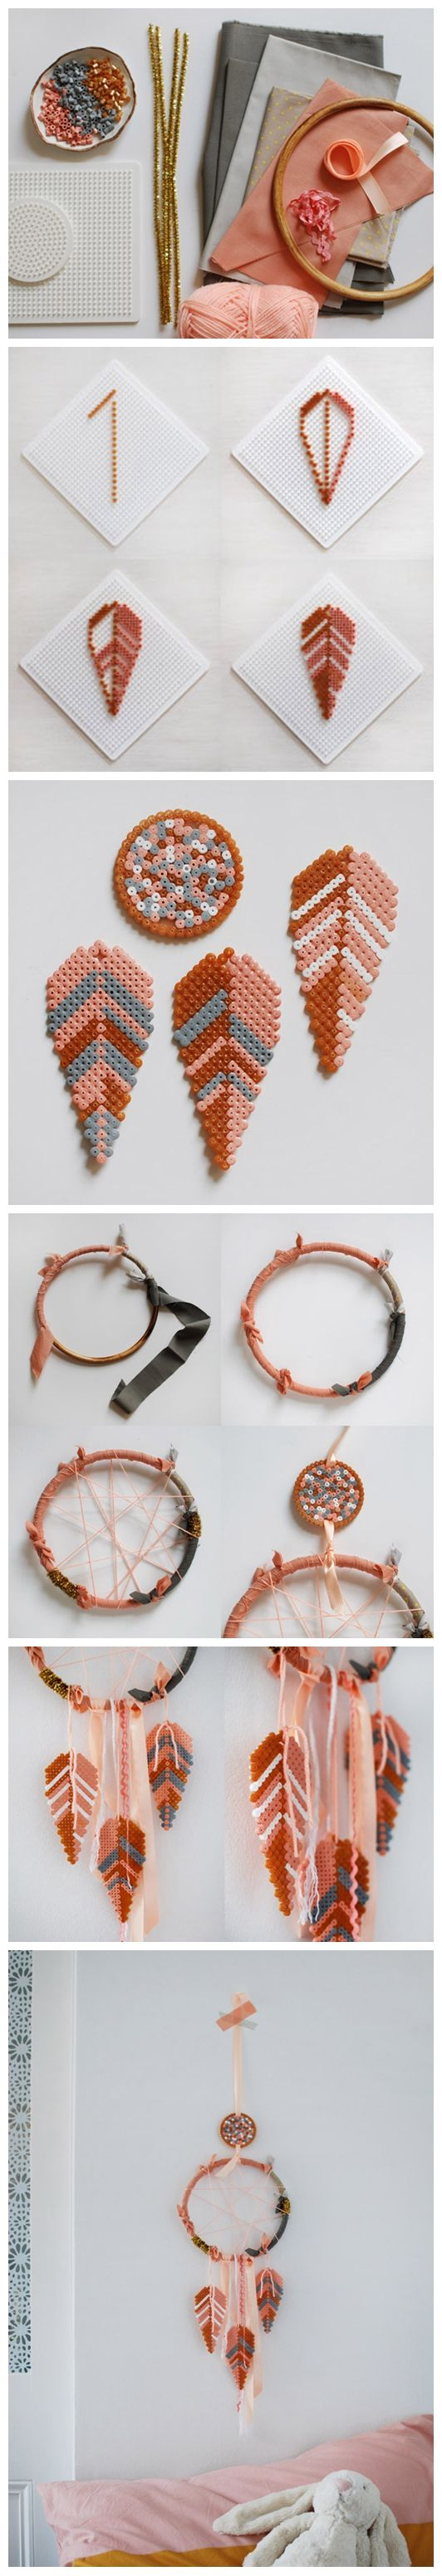 Make a lovely dream catcher with Hama bead feathers | Village Voices